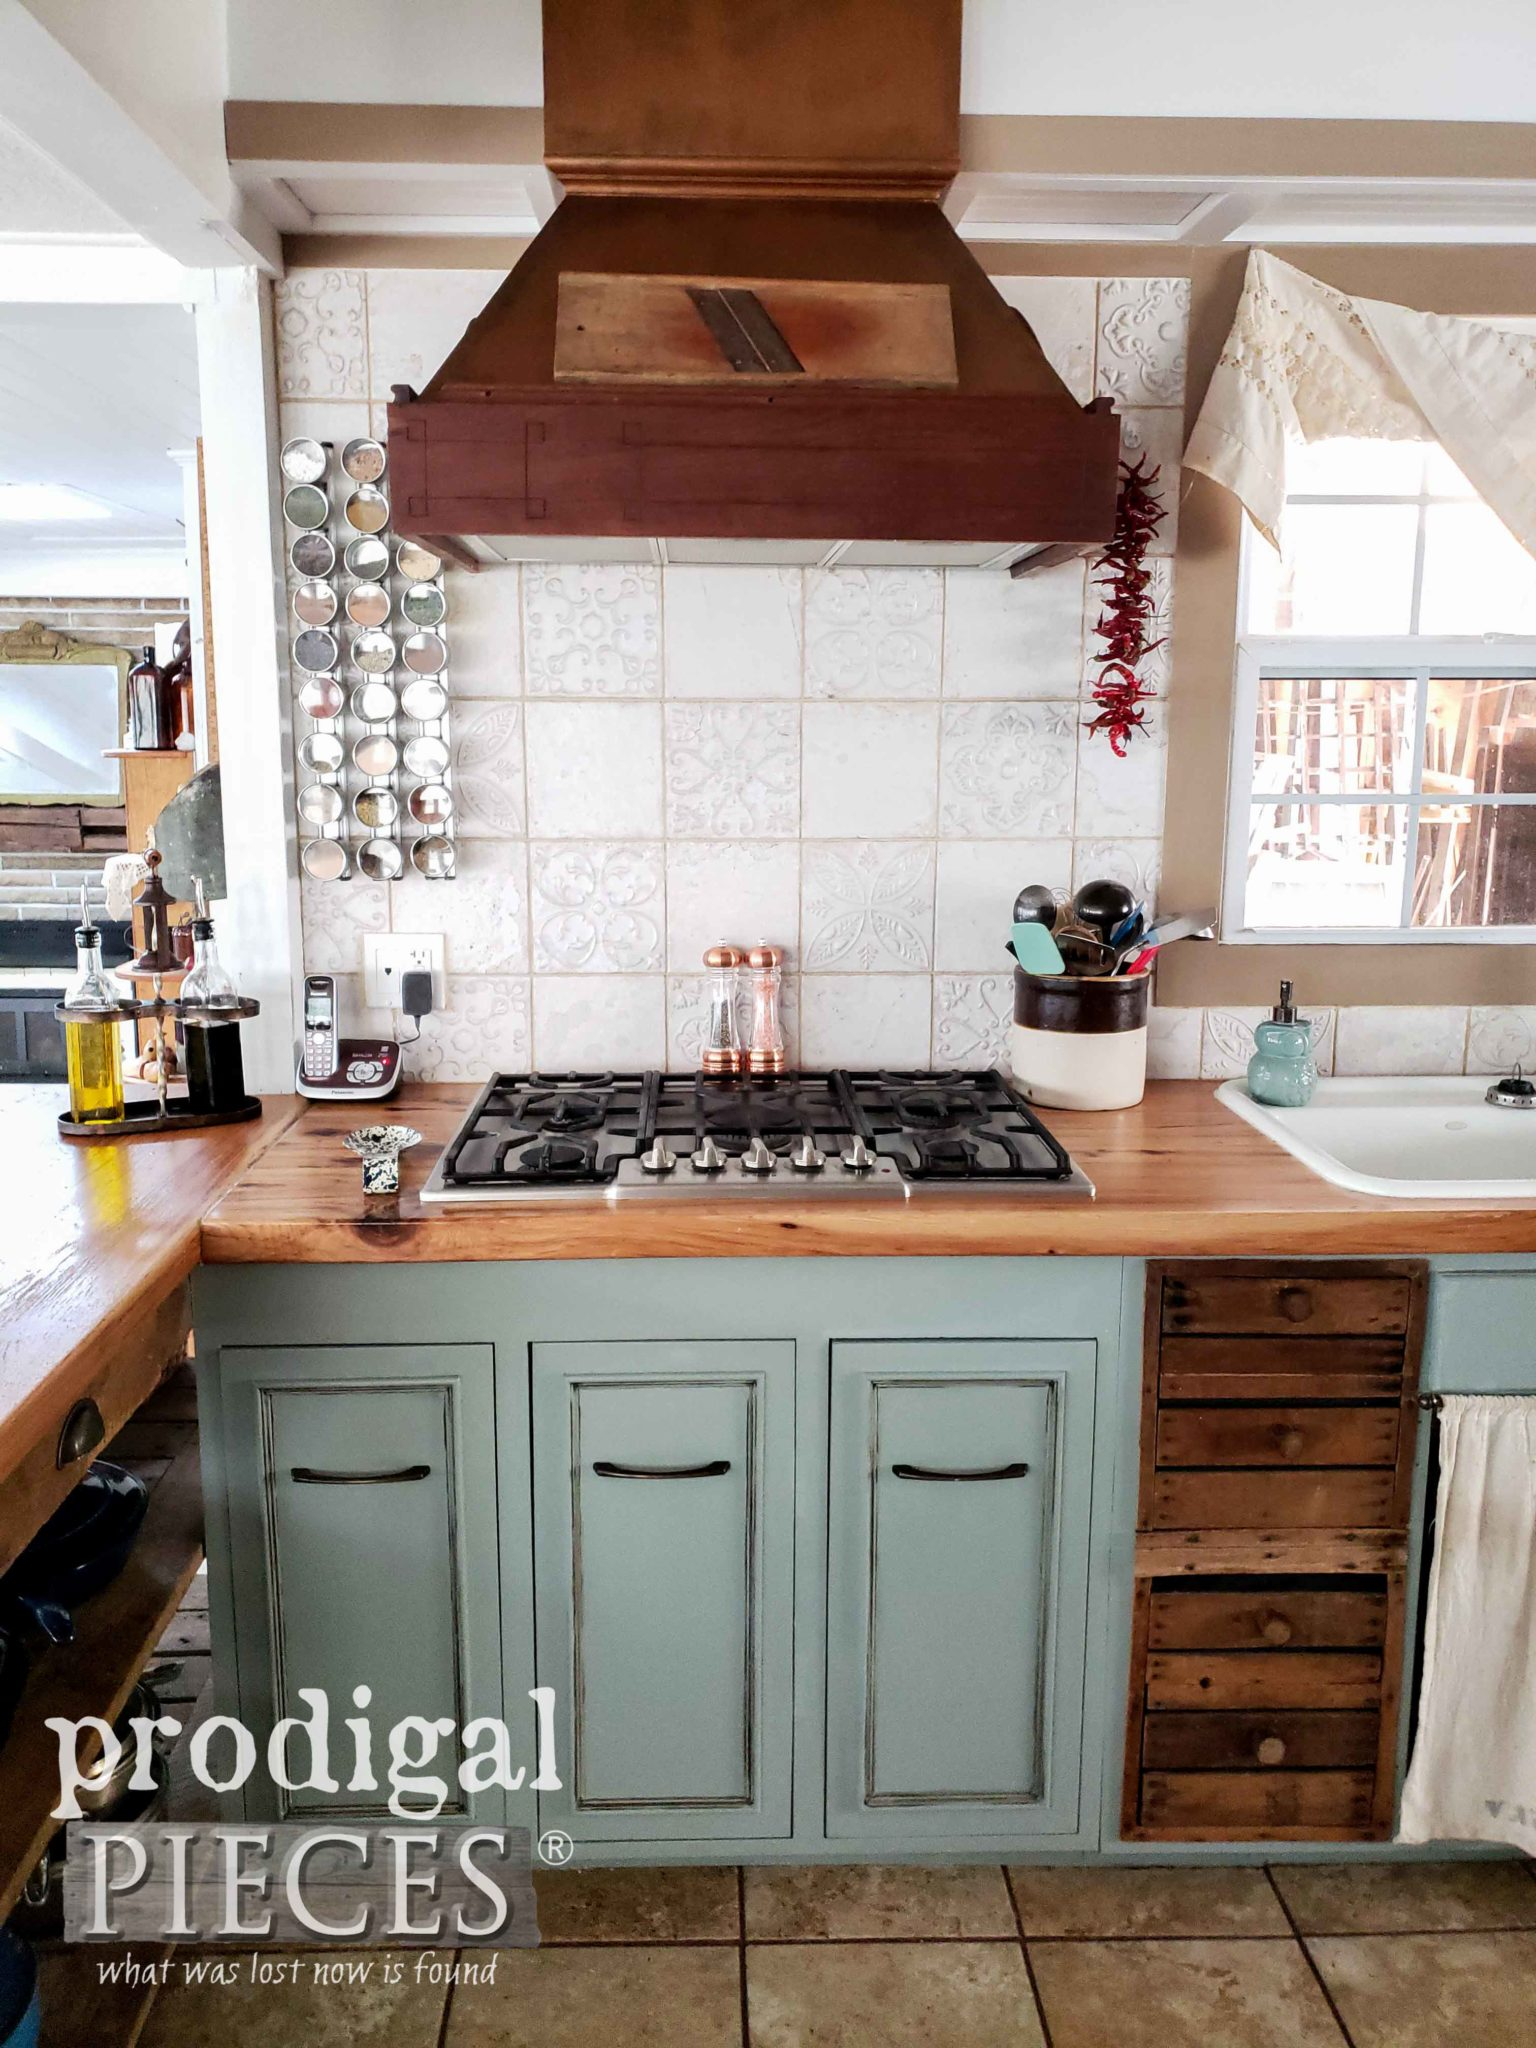 Custom Built DIY Farmhouse Kitchen Range Hood in Copper by Prodigal Pieces | prodigalpieces.com